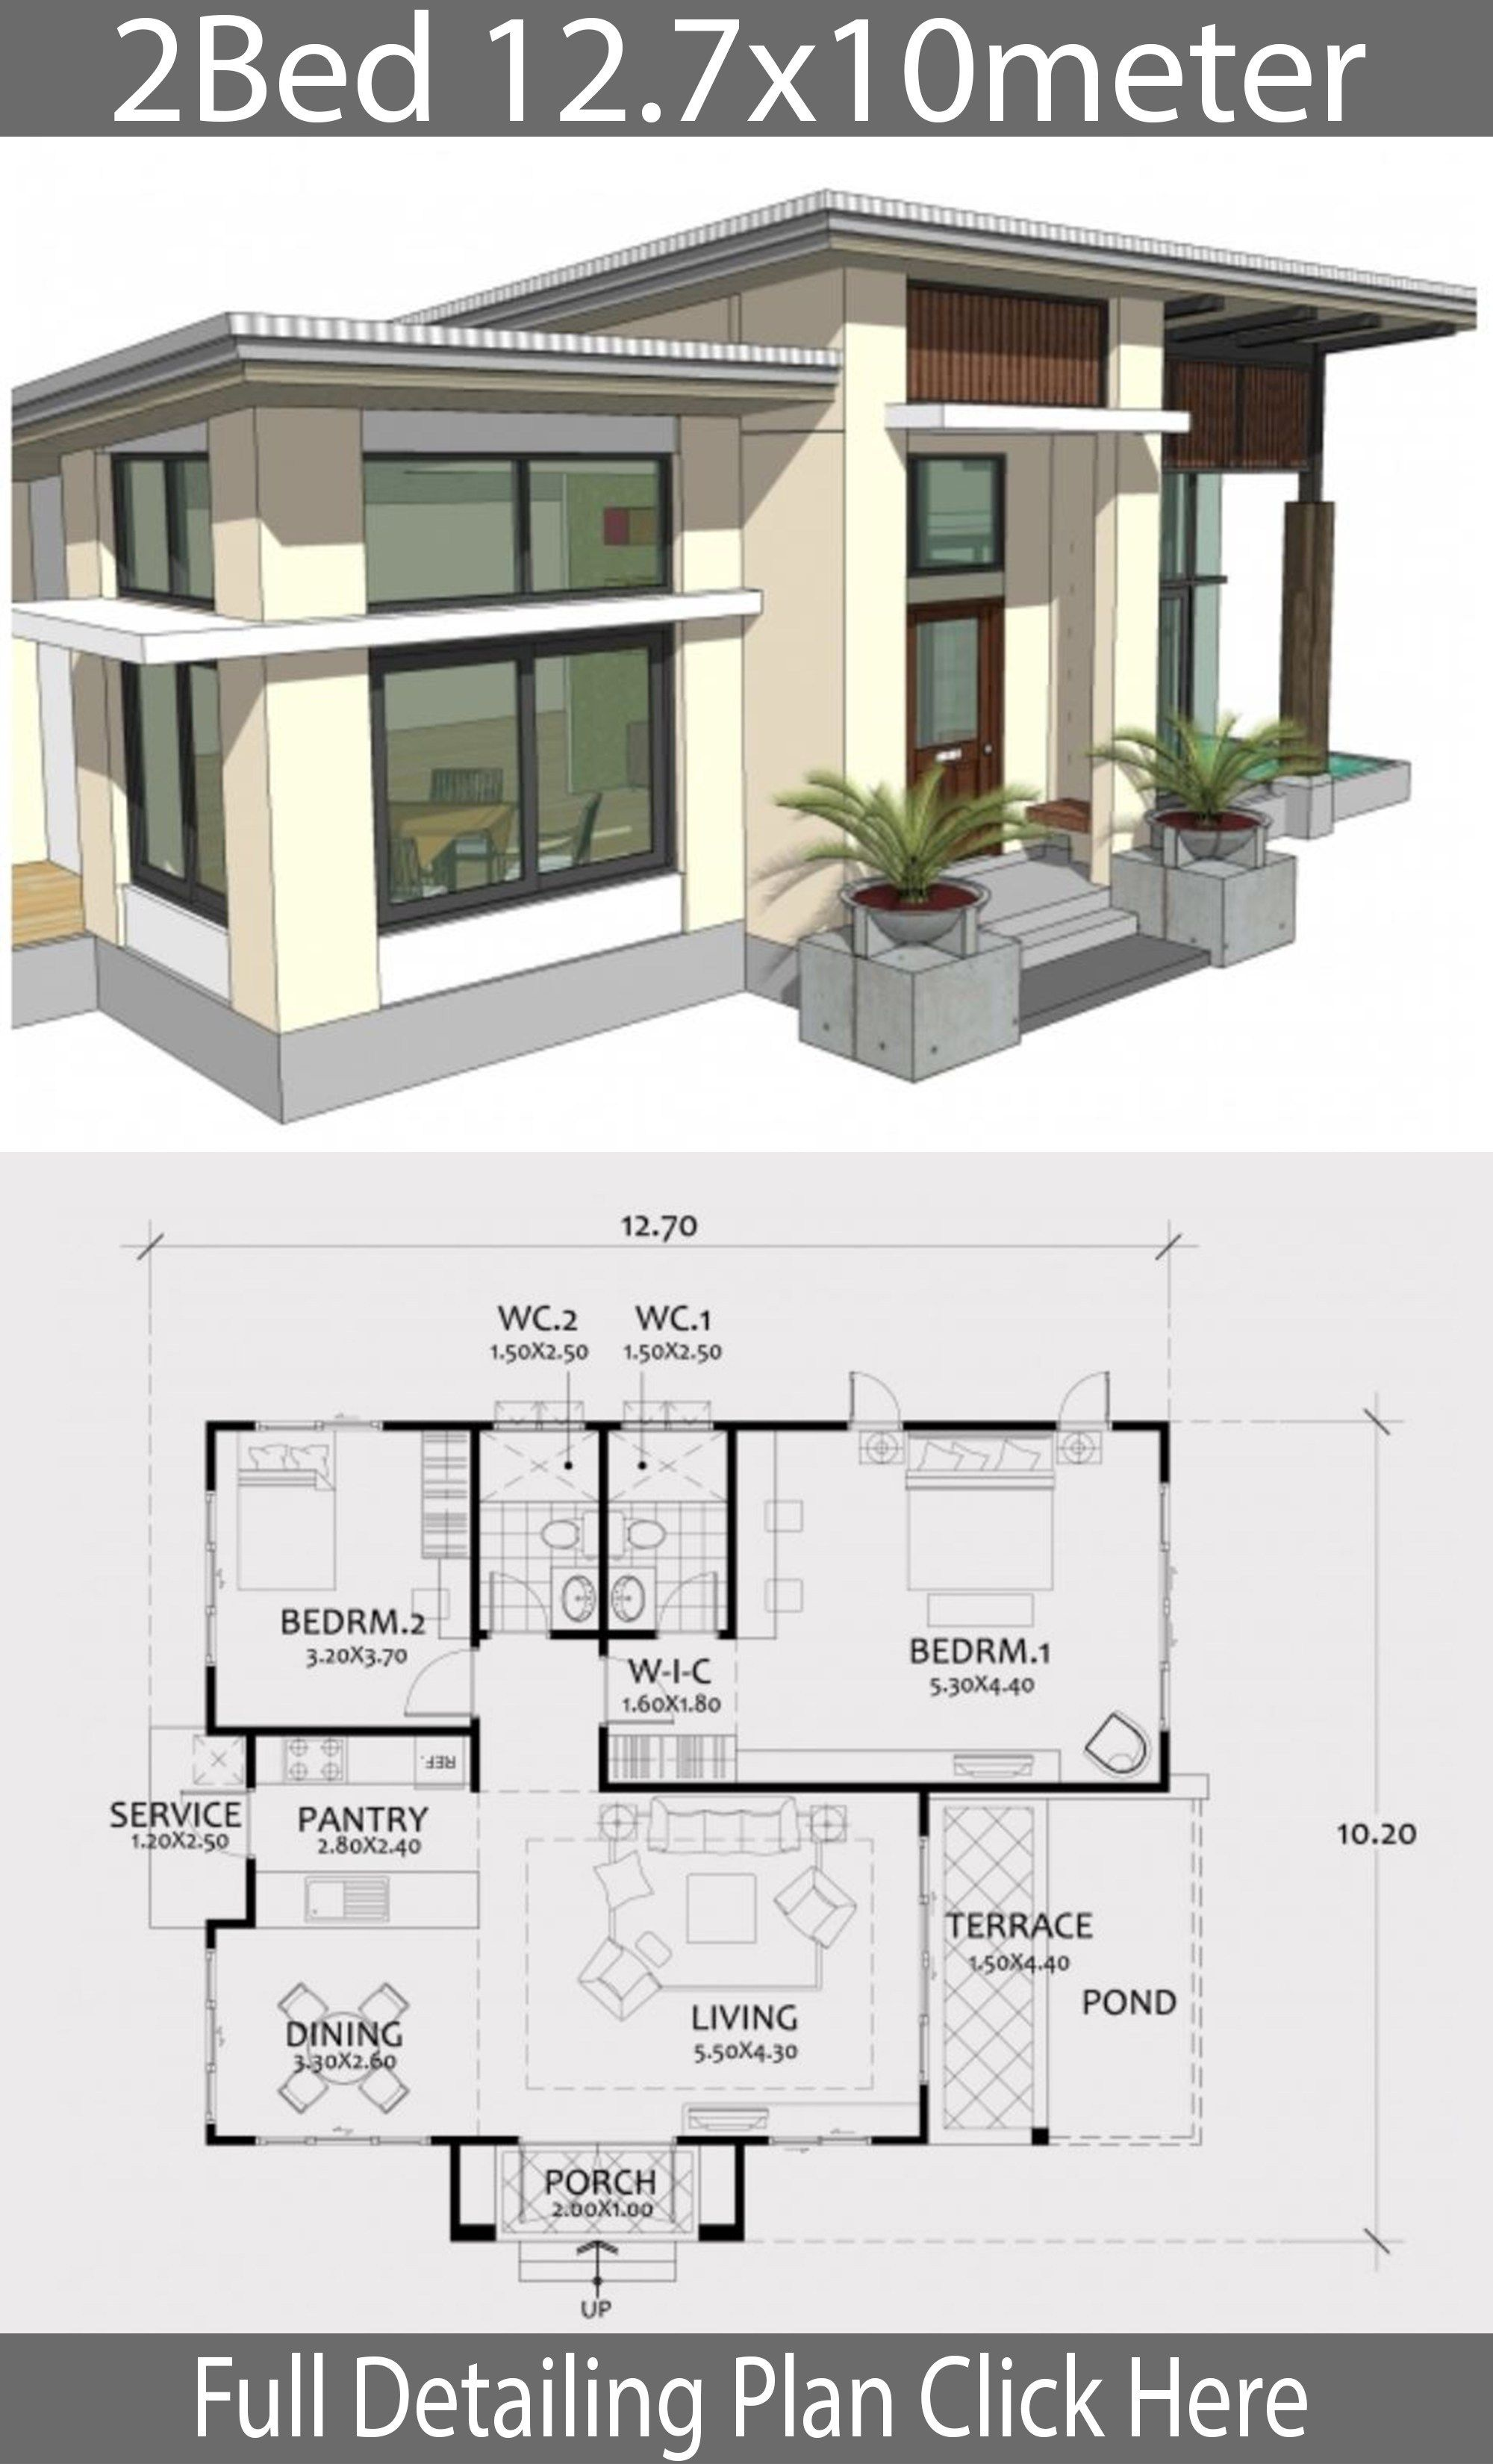 Home Design Plan 12 7x10m With 2 Bedrooms Home Design With Plan Simple House Design Affordable House Plans Modern House Plans